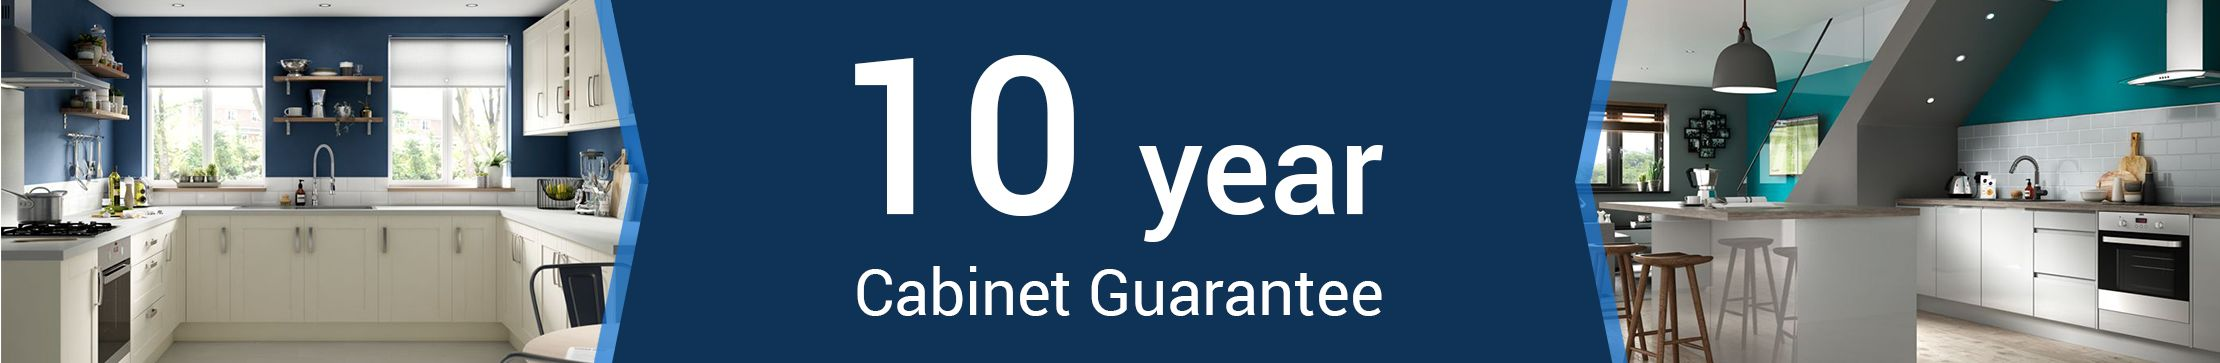 10 year cabinet guarantee